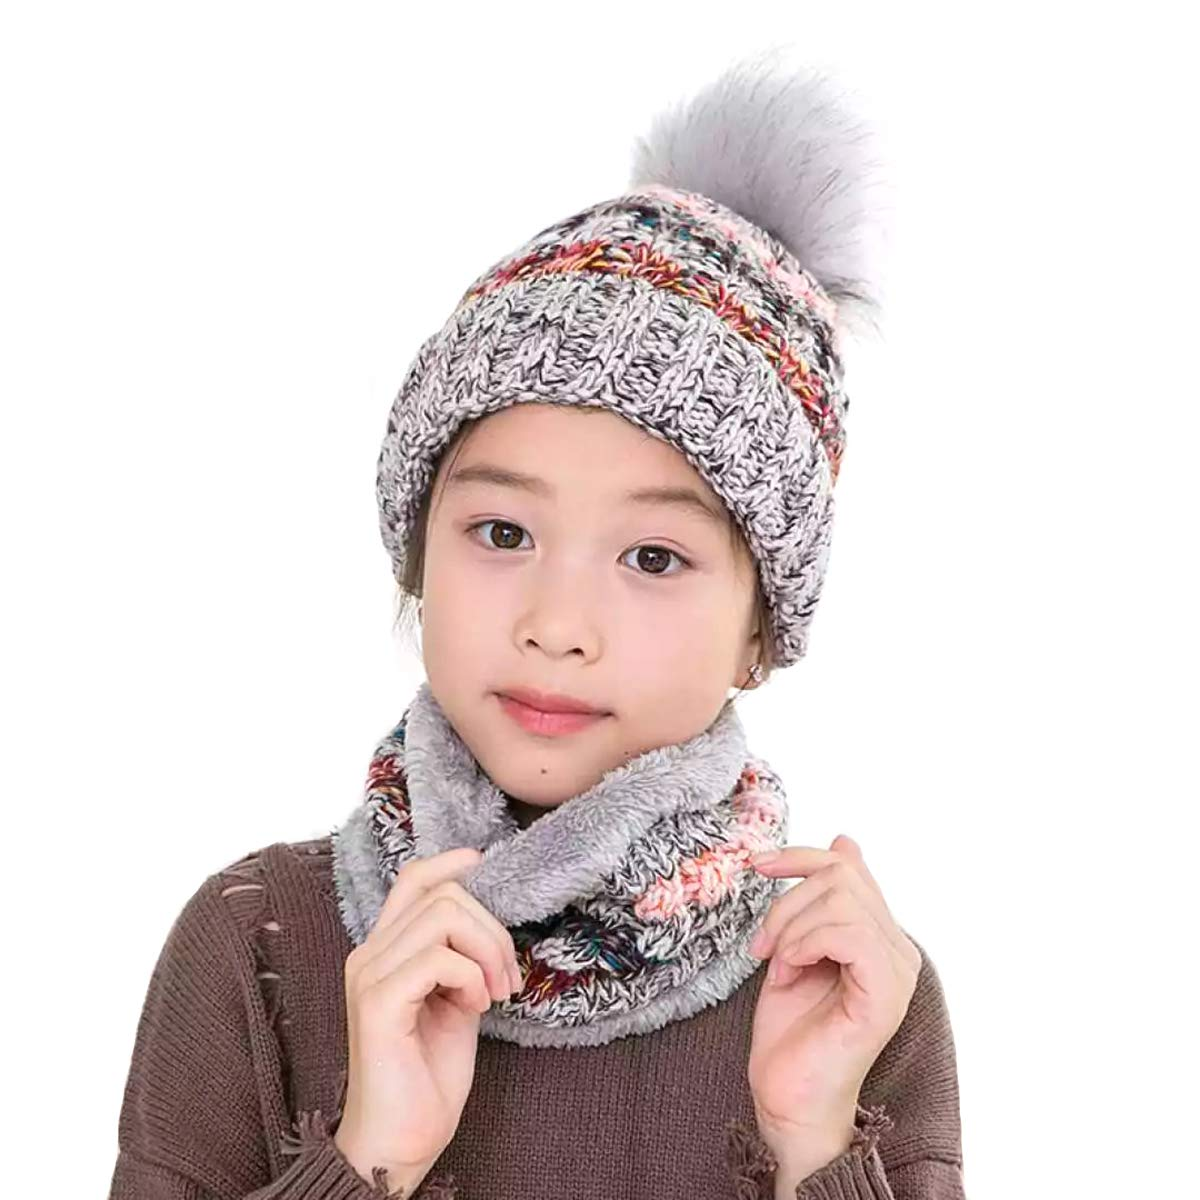 Lanzom 2pcs Baby Girls Boys Winter Hat Thick Scarf Set Toddler Knit Warm Cap + Circle Scarf Neck Warmers One Size(Fit for 2-8 Years))